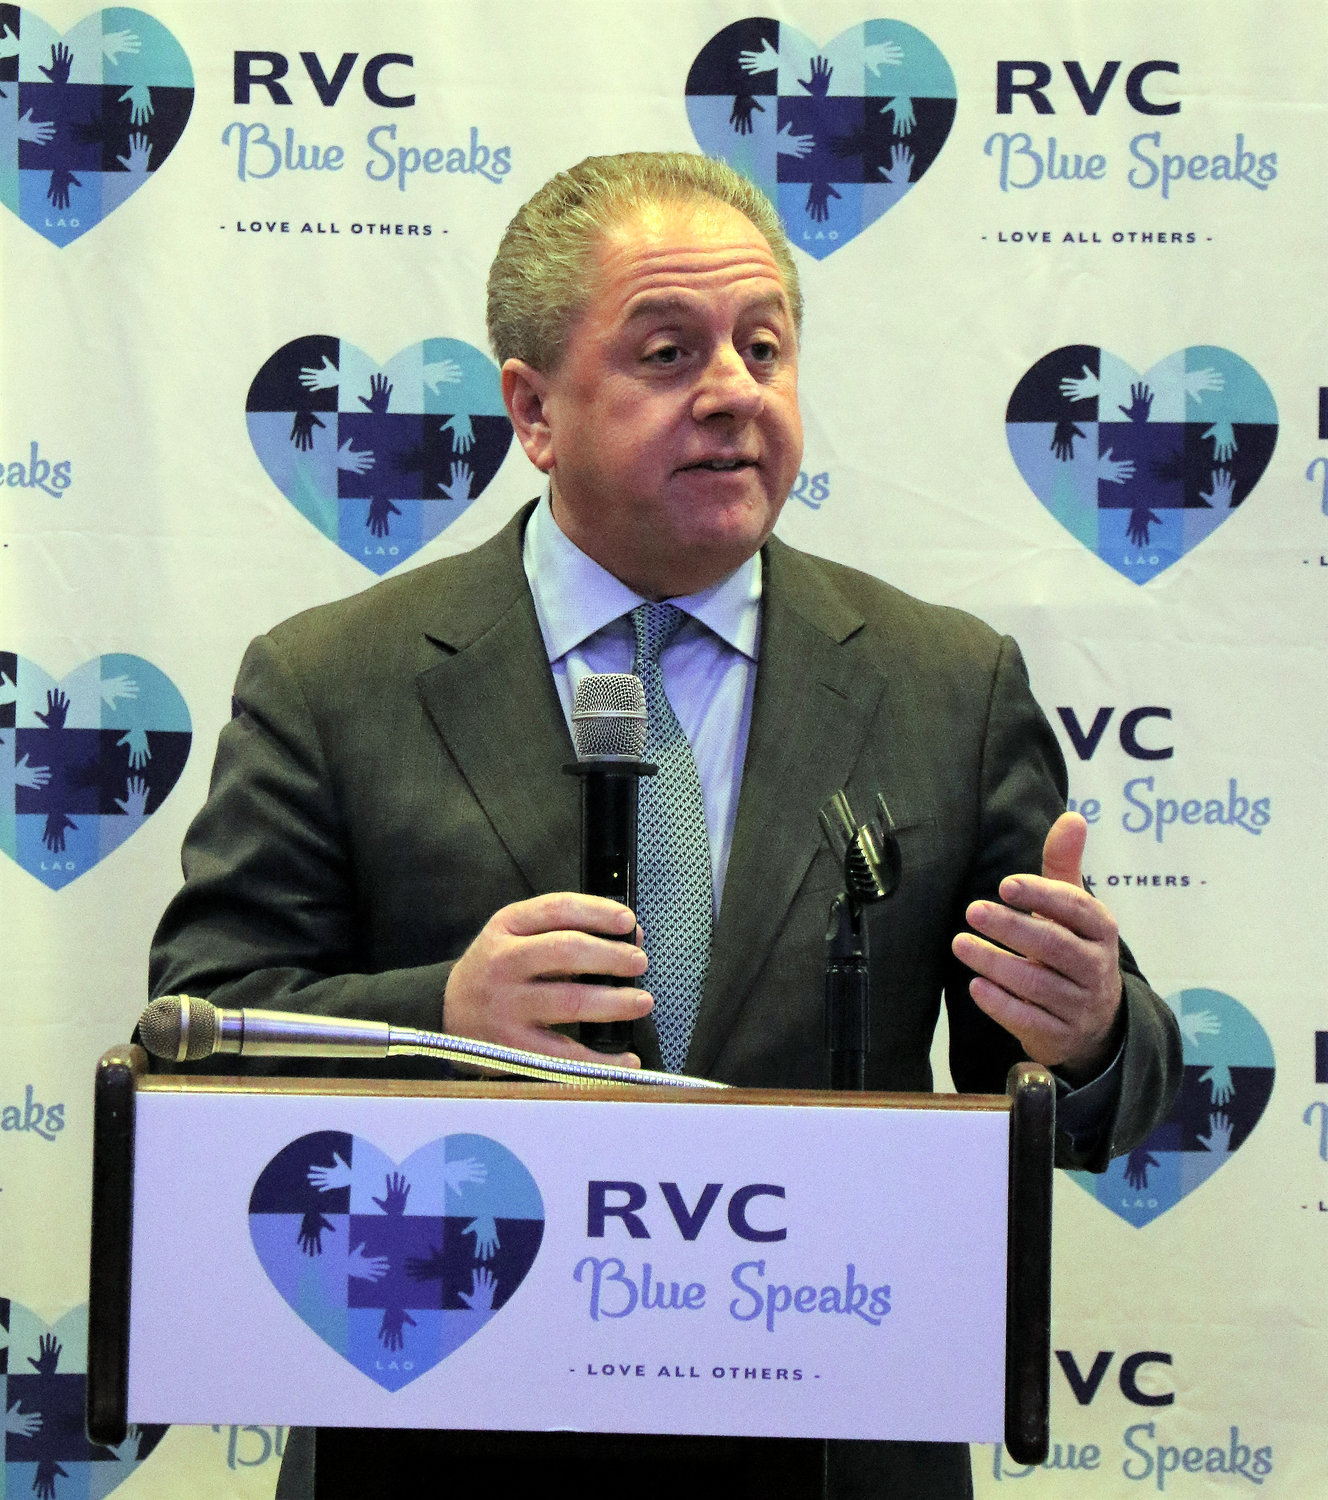 RVC Blue Speaks honored local businessman Butch Yamali for his generosity to the organization.